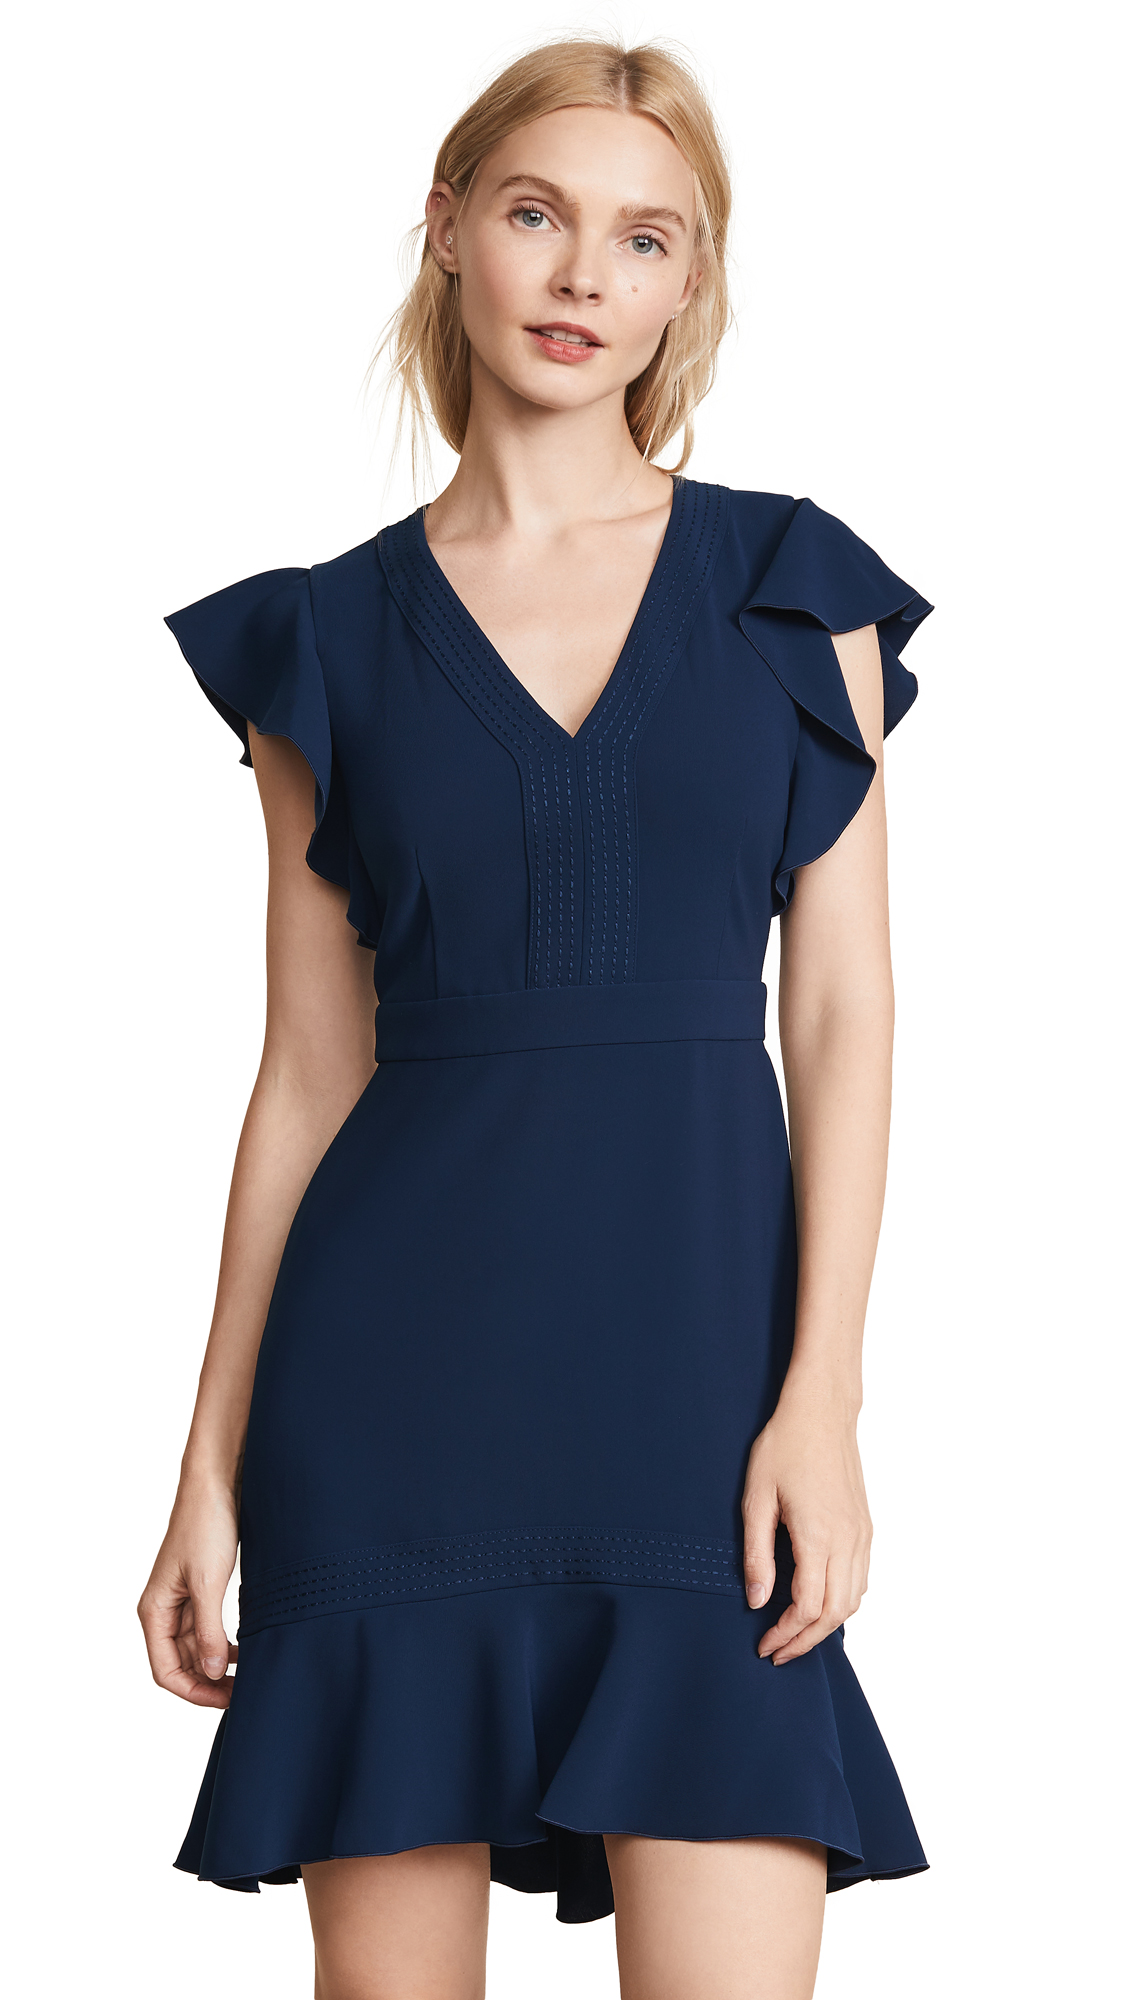 Rachel Zoe Uma Dress - Navy